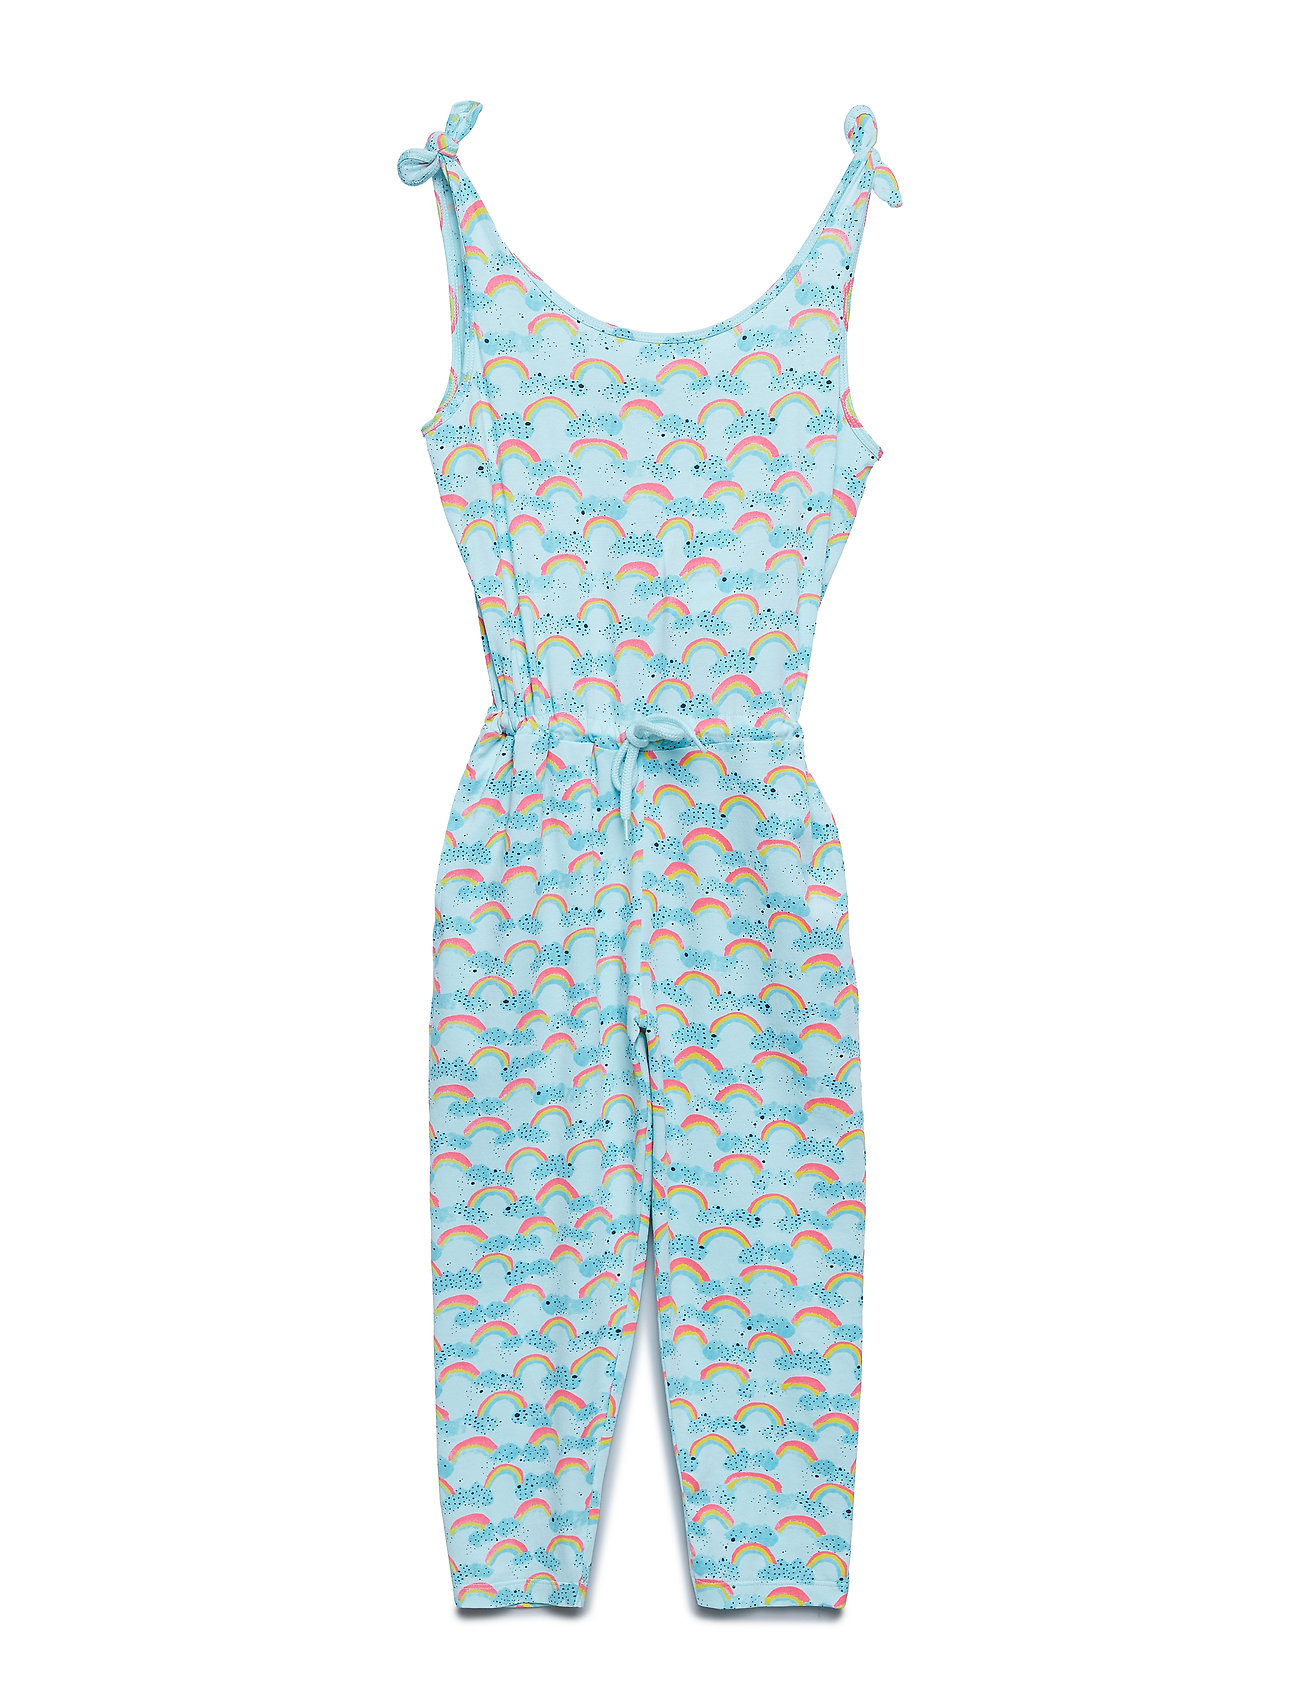 Soft Gallery Deborah Jumpsuit - BLUE TINT, AOP RAINBOW